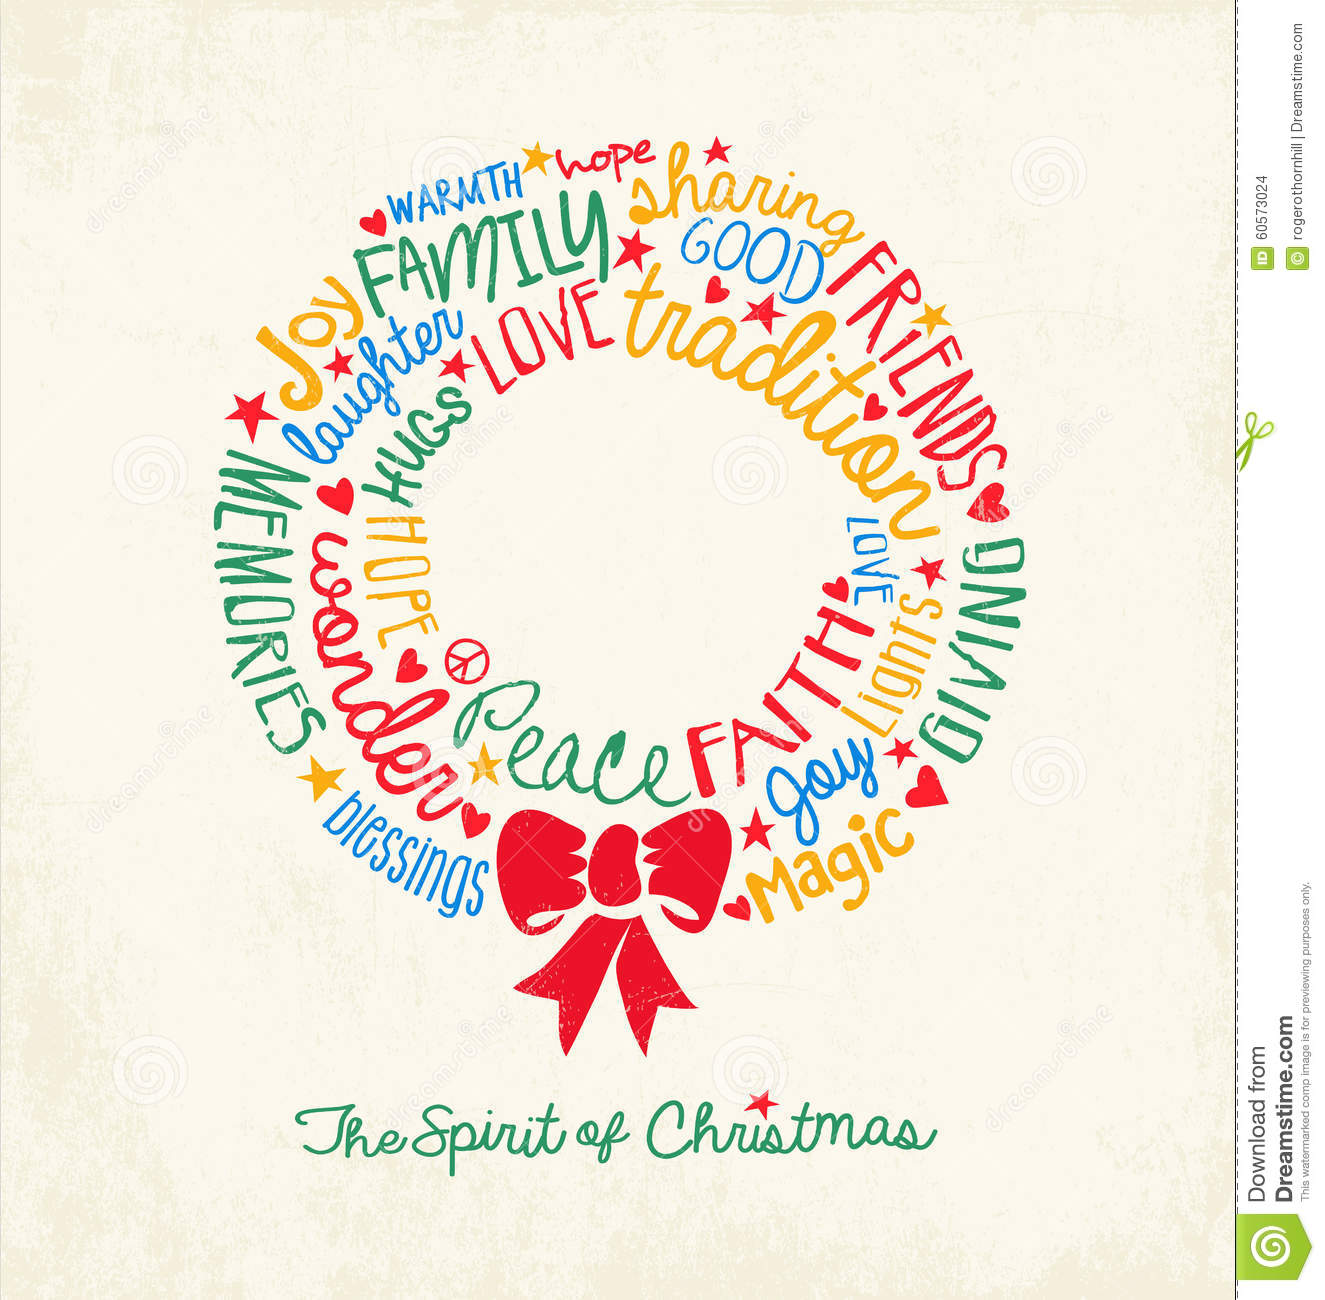 handwritten word cloud christmas wreath holiday greeting card stock vector image 60573024